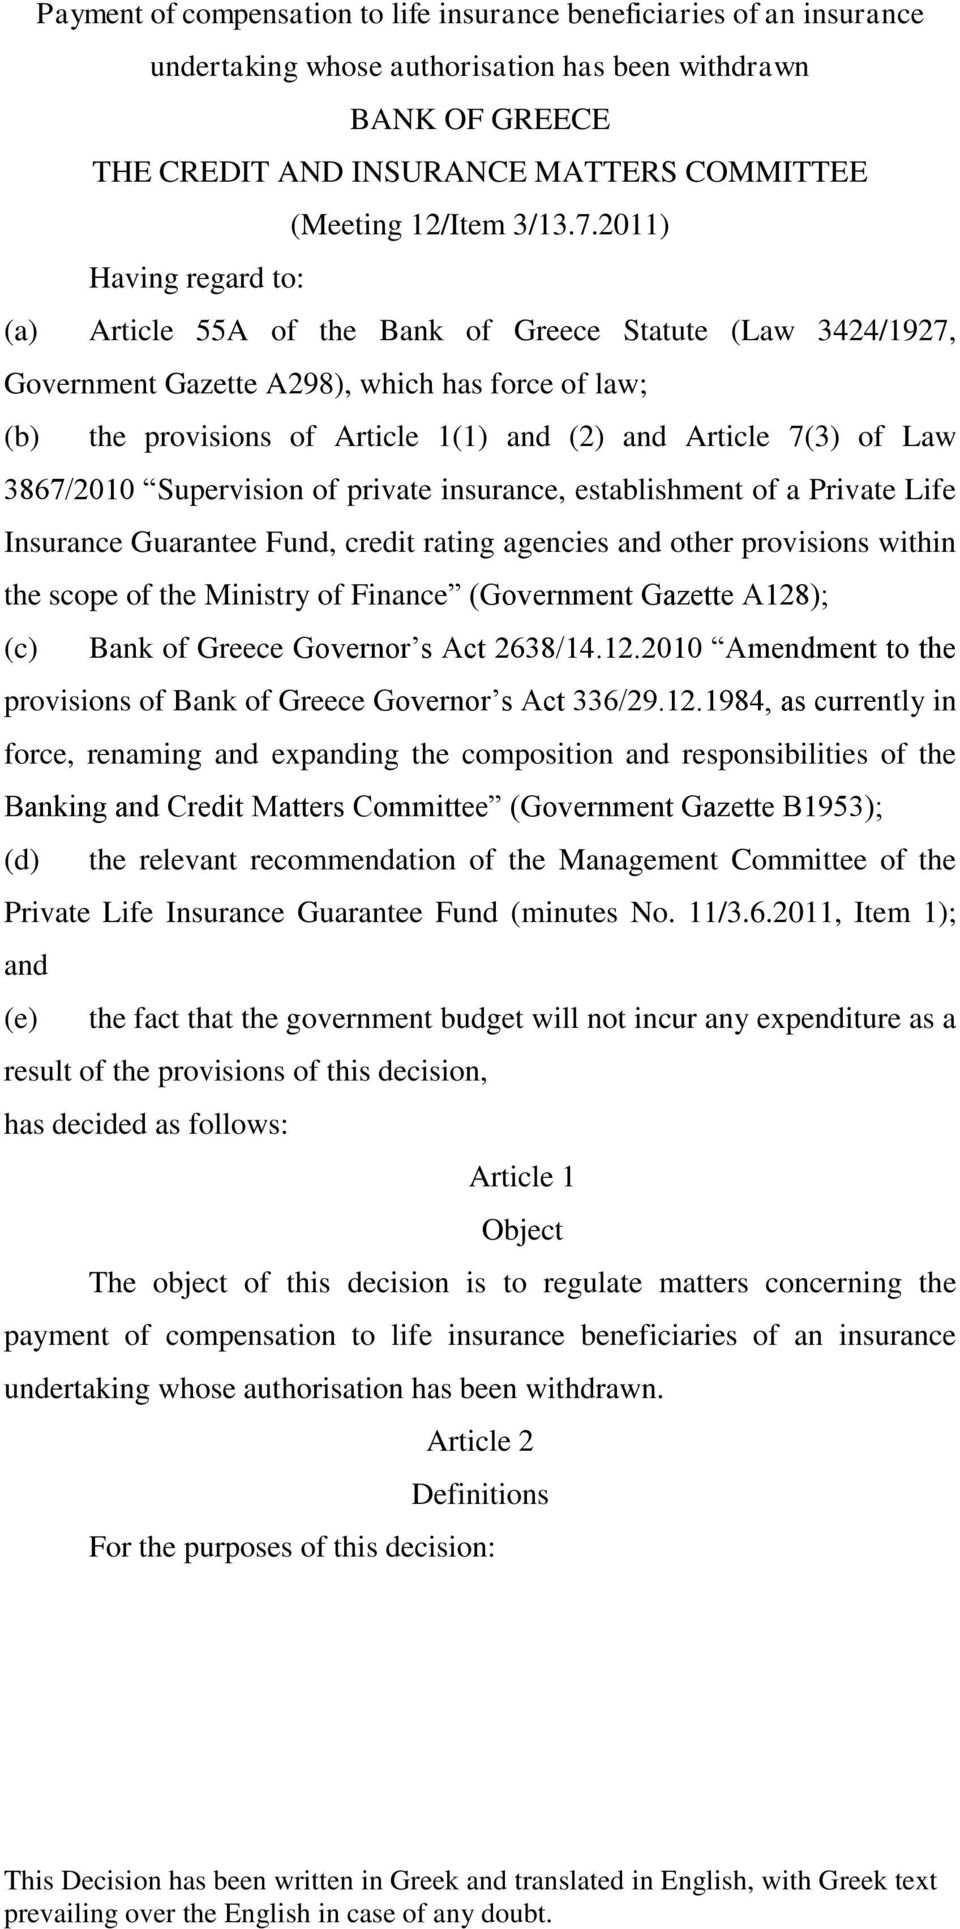 2011) Having regard to: (a) Article 55A of the Bank of Greece Statute (Law 3424/1927, Government Gazette A298), which has force of law; (b) the provisions of Article 1(1) and (2) and Article 7(3) of